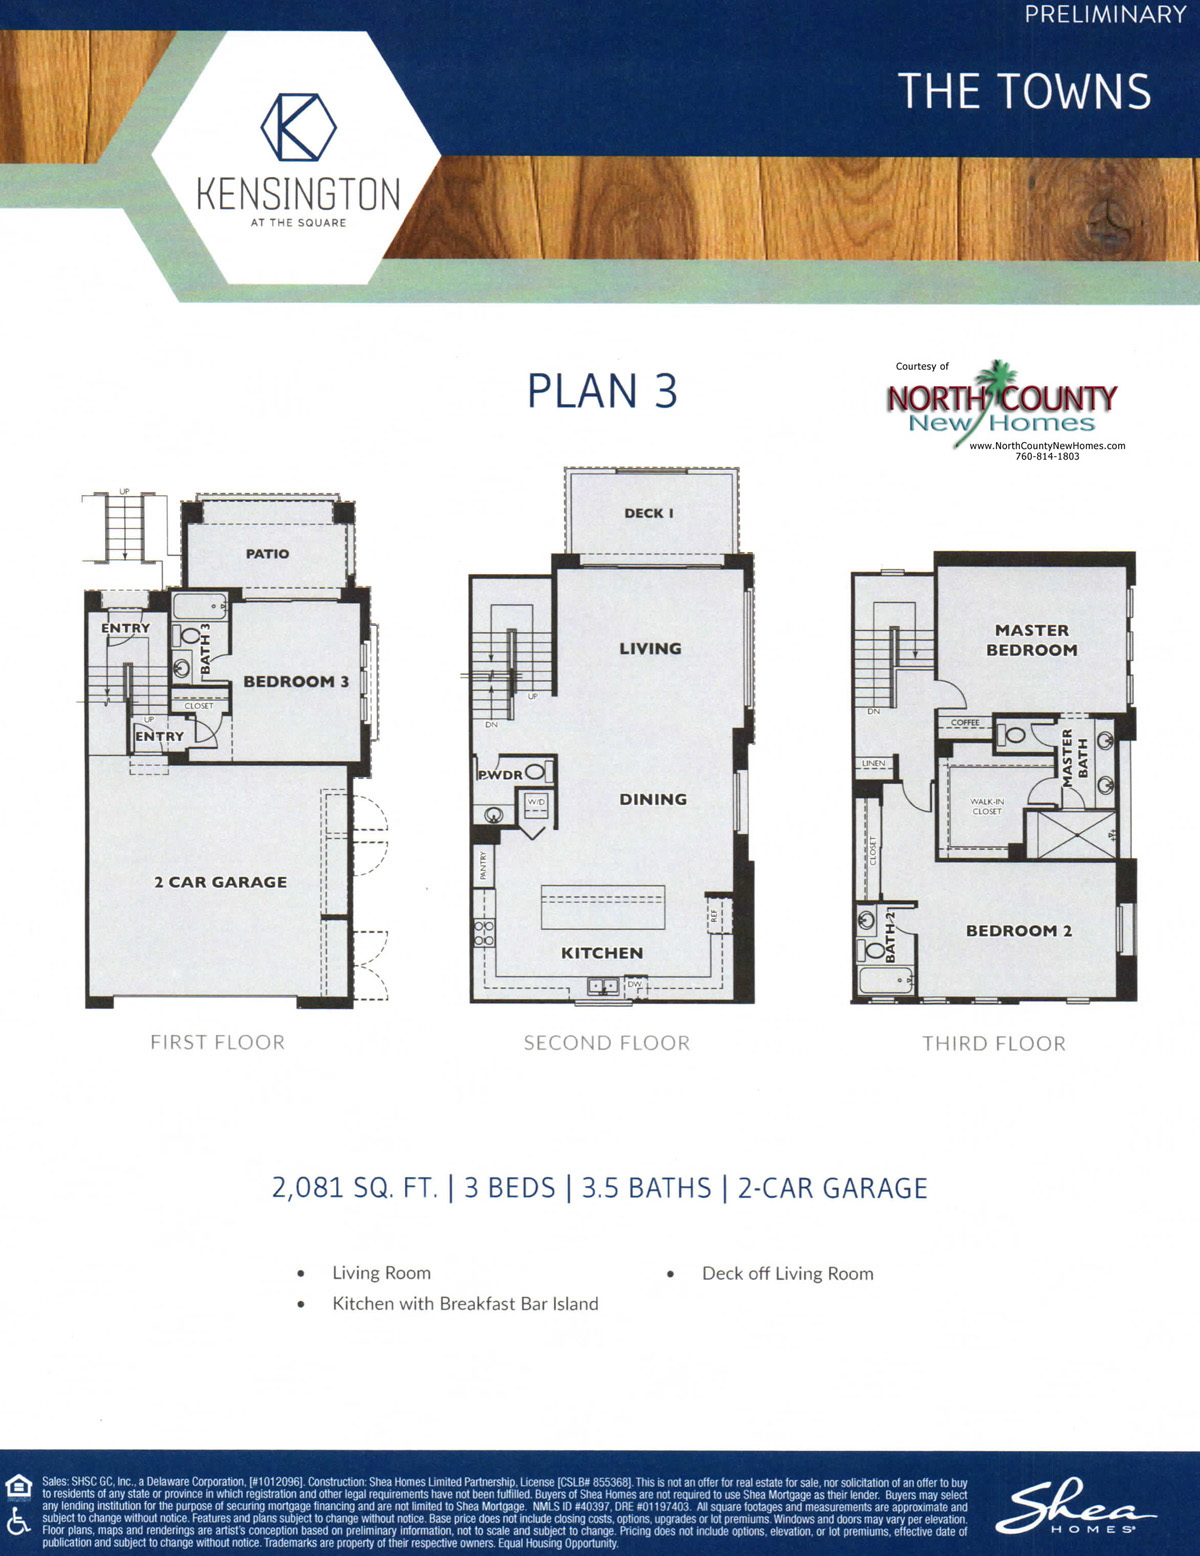 Kensington at The Square floor plans. New townhomes in Carlsbad, California at Bressi Ranch. New construction. 3-story townhomes. Floor Plan 3